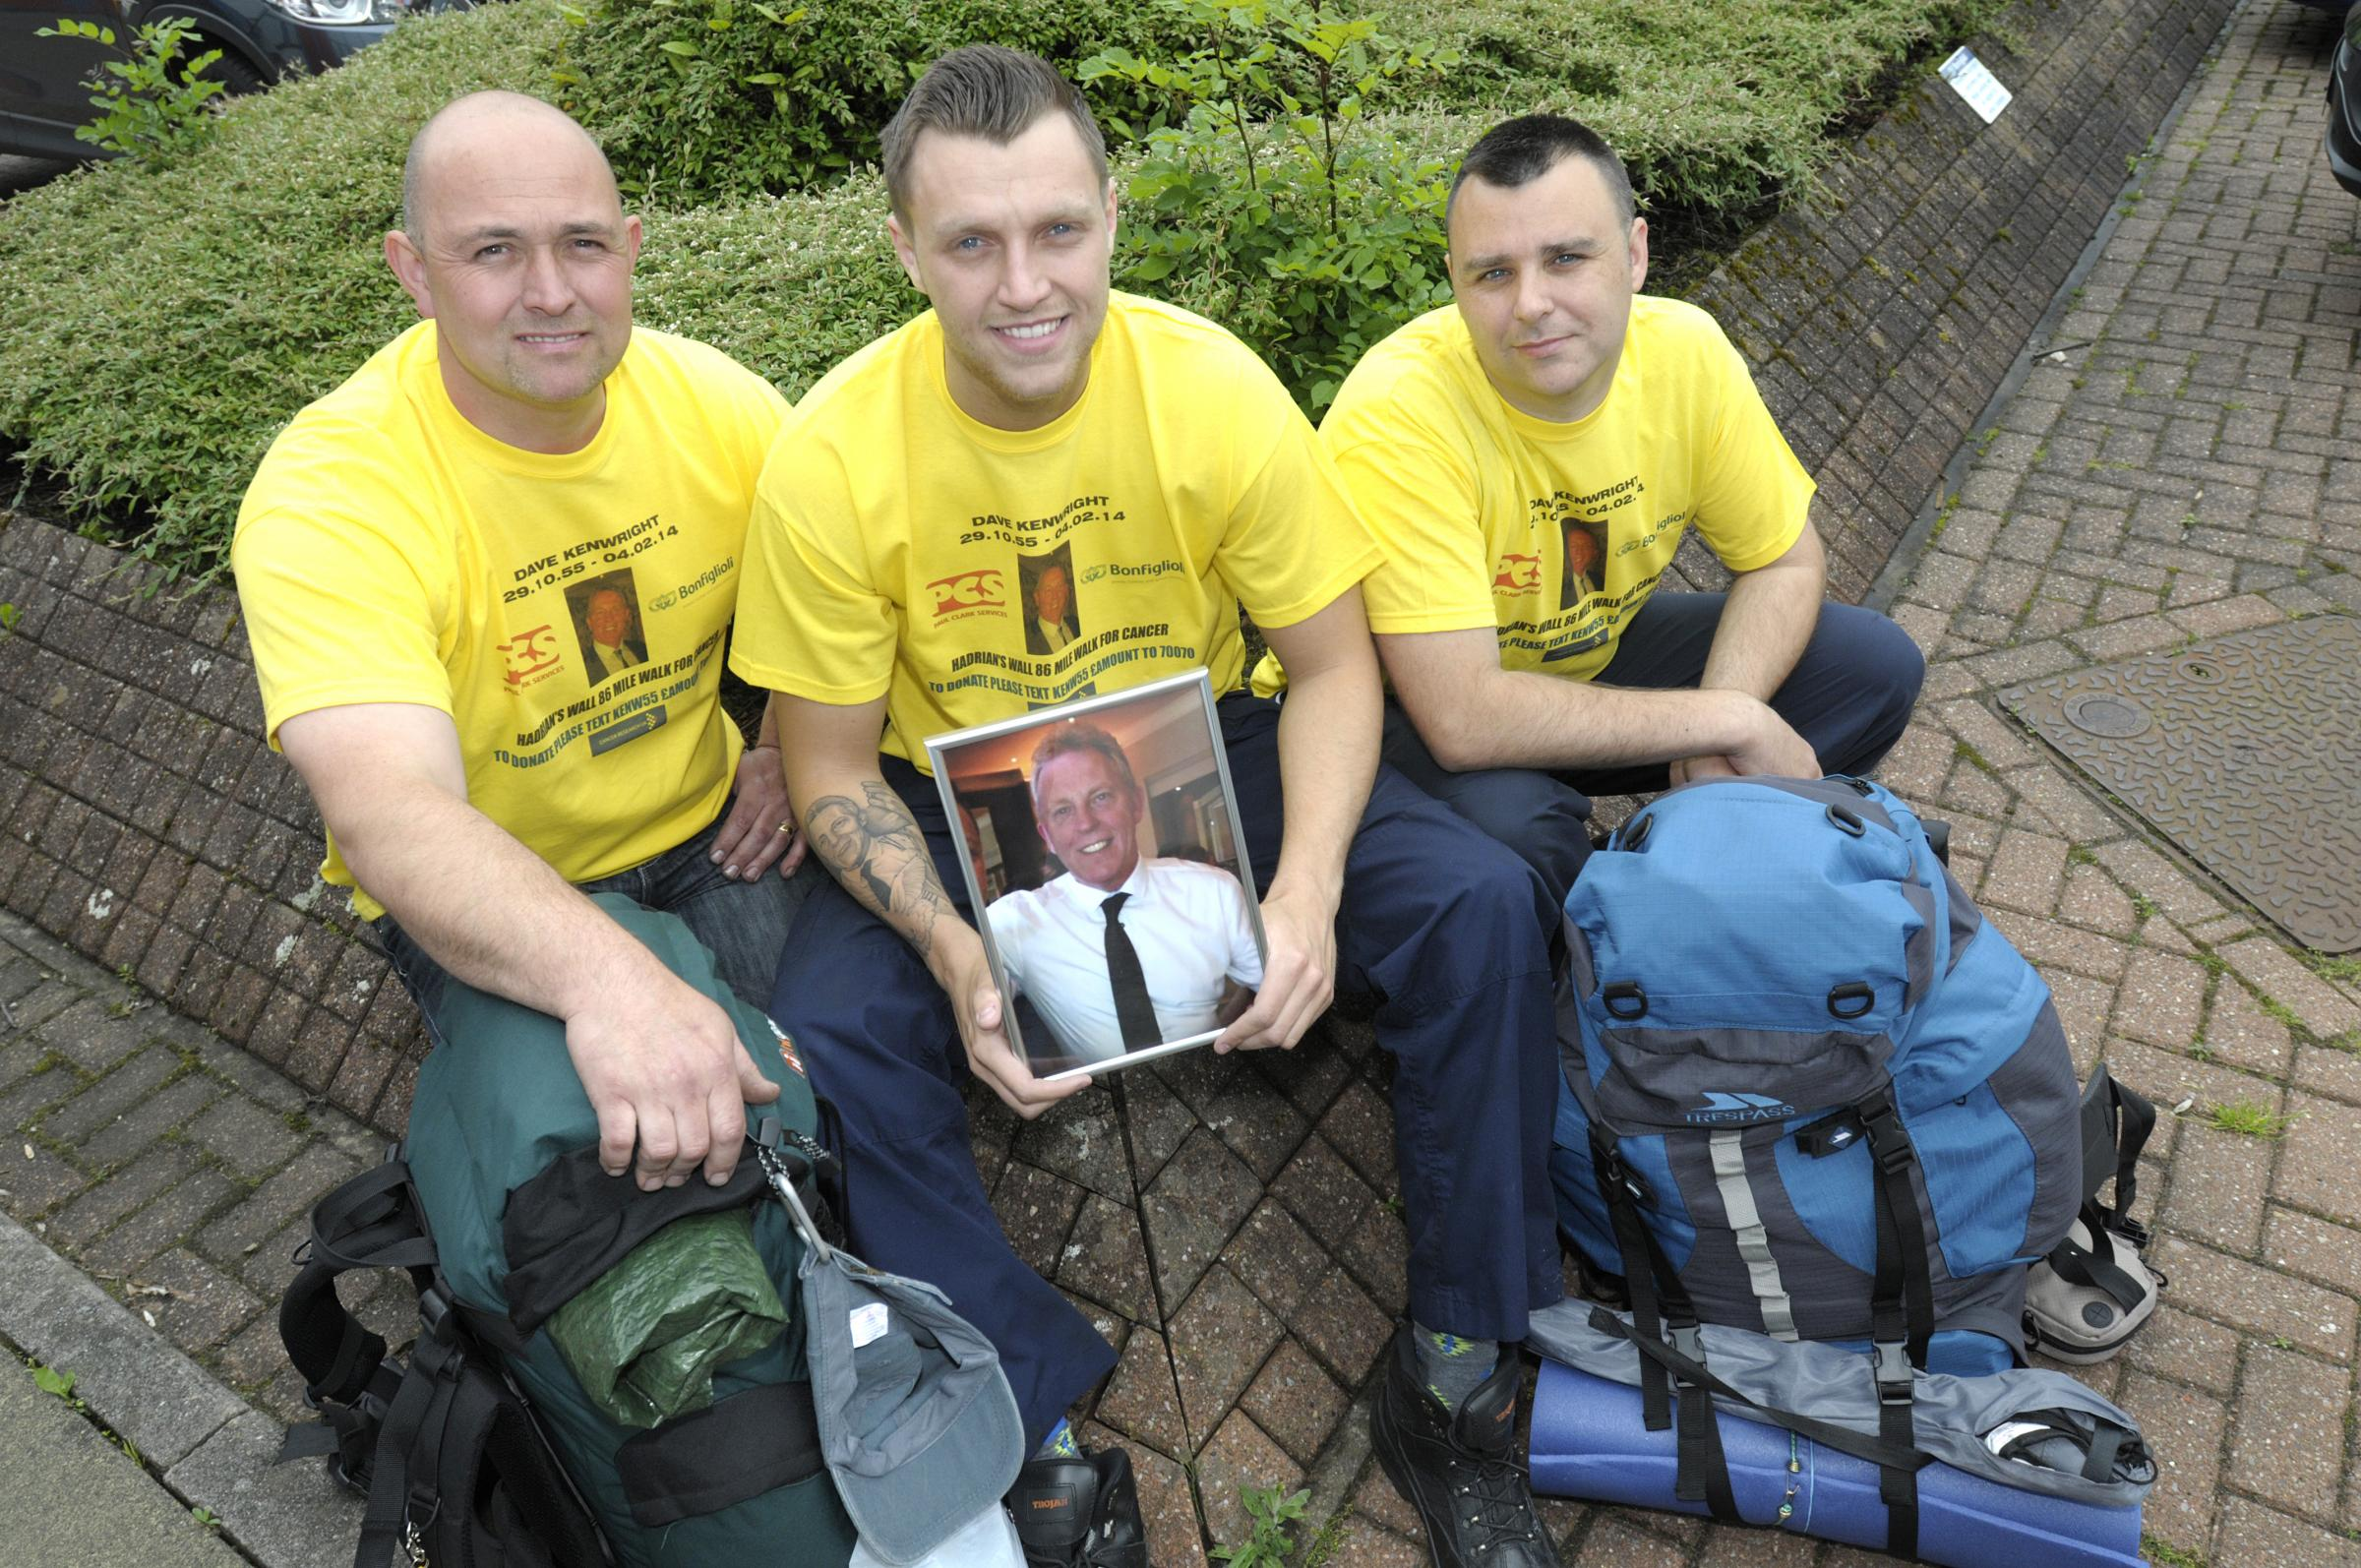 Sons conquer Hadrian's Wall in memory of 'once in a lifetime' dad